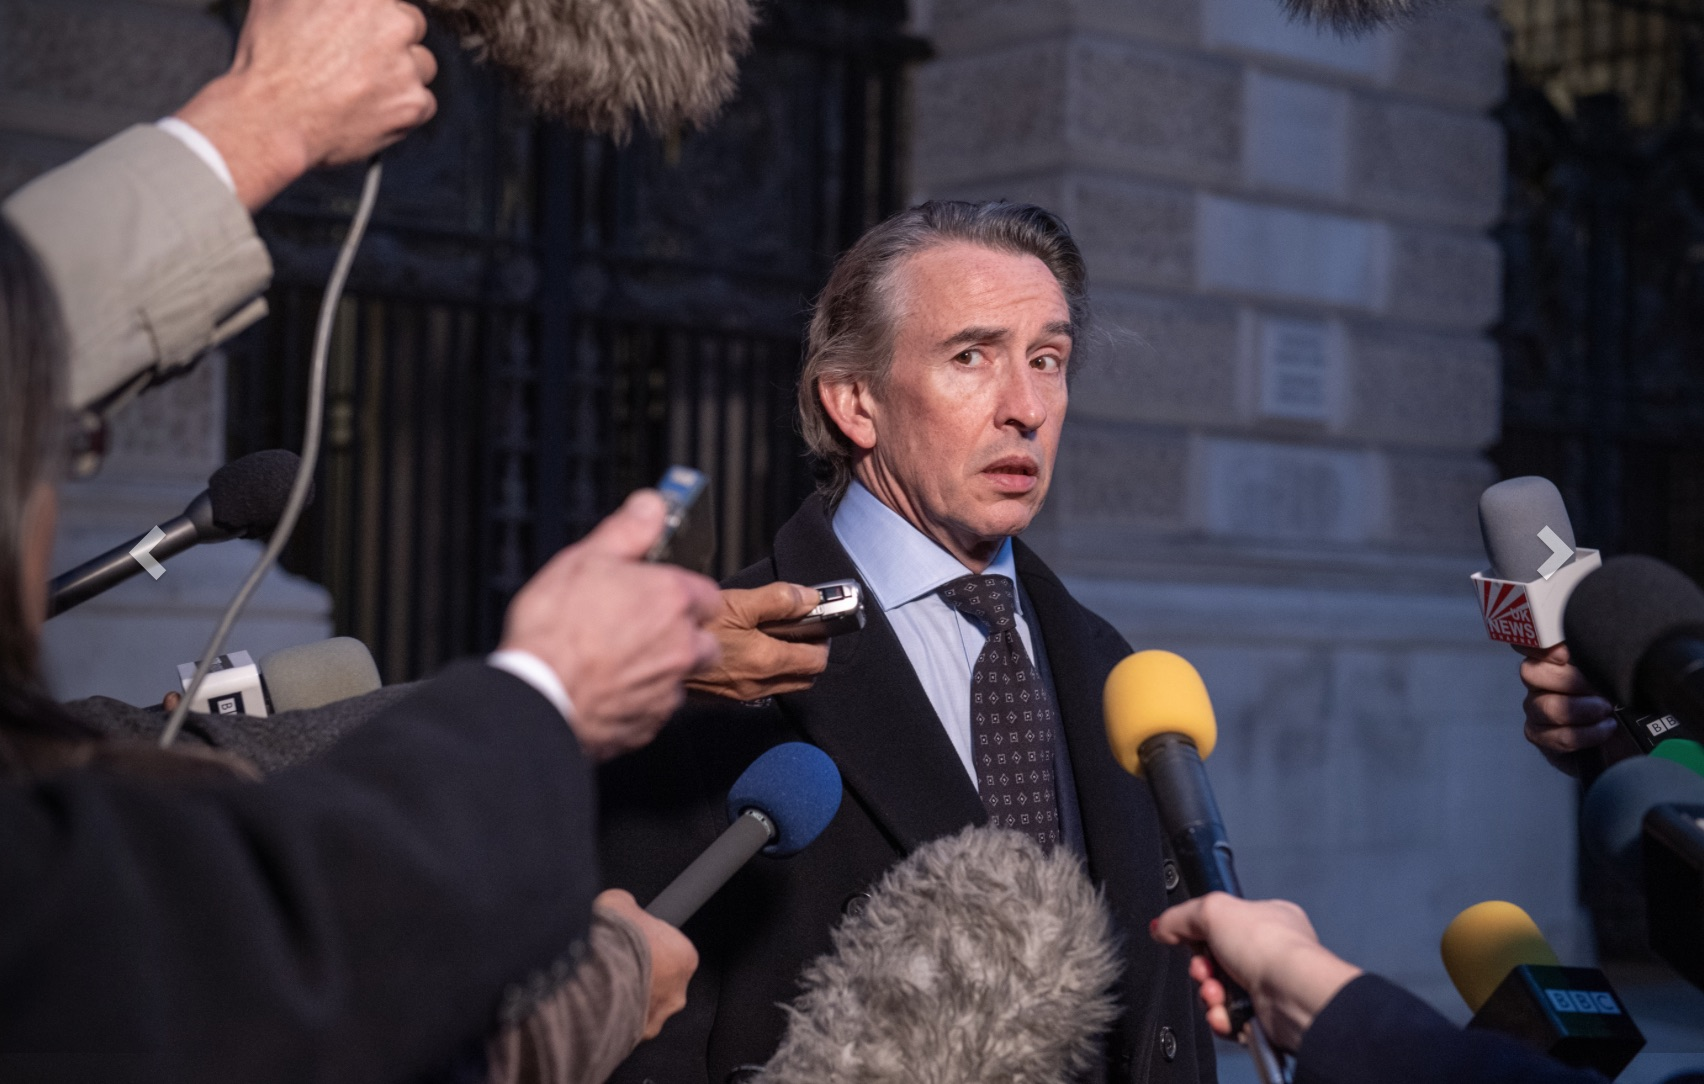 Steve Coogan Greed Michael Winterbottom